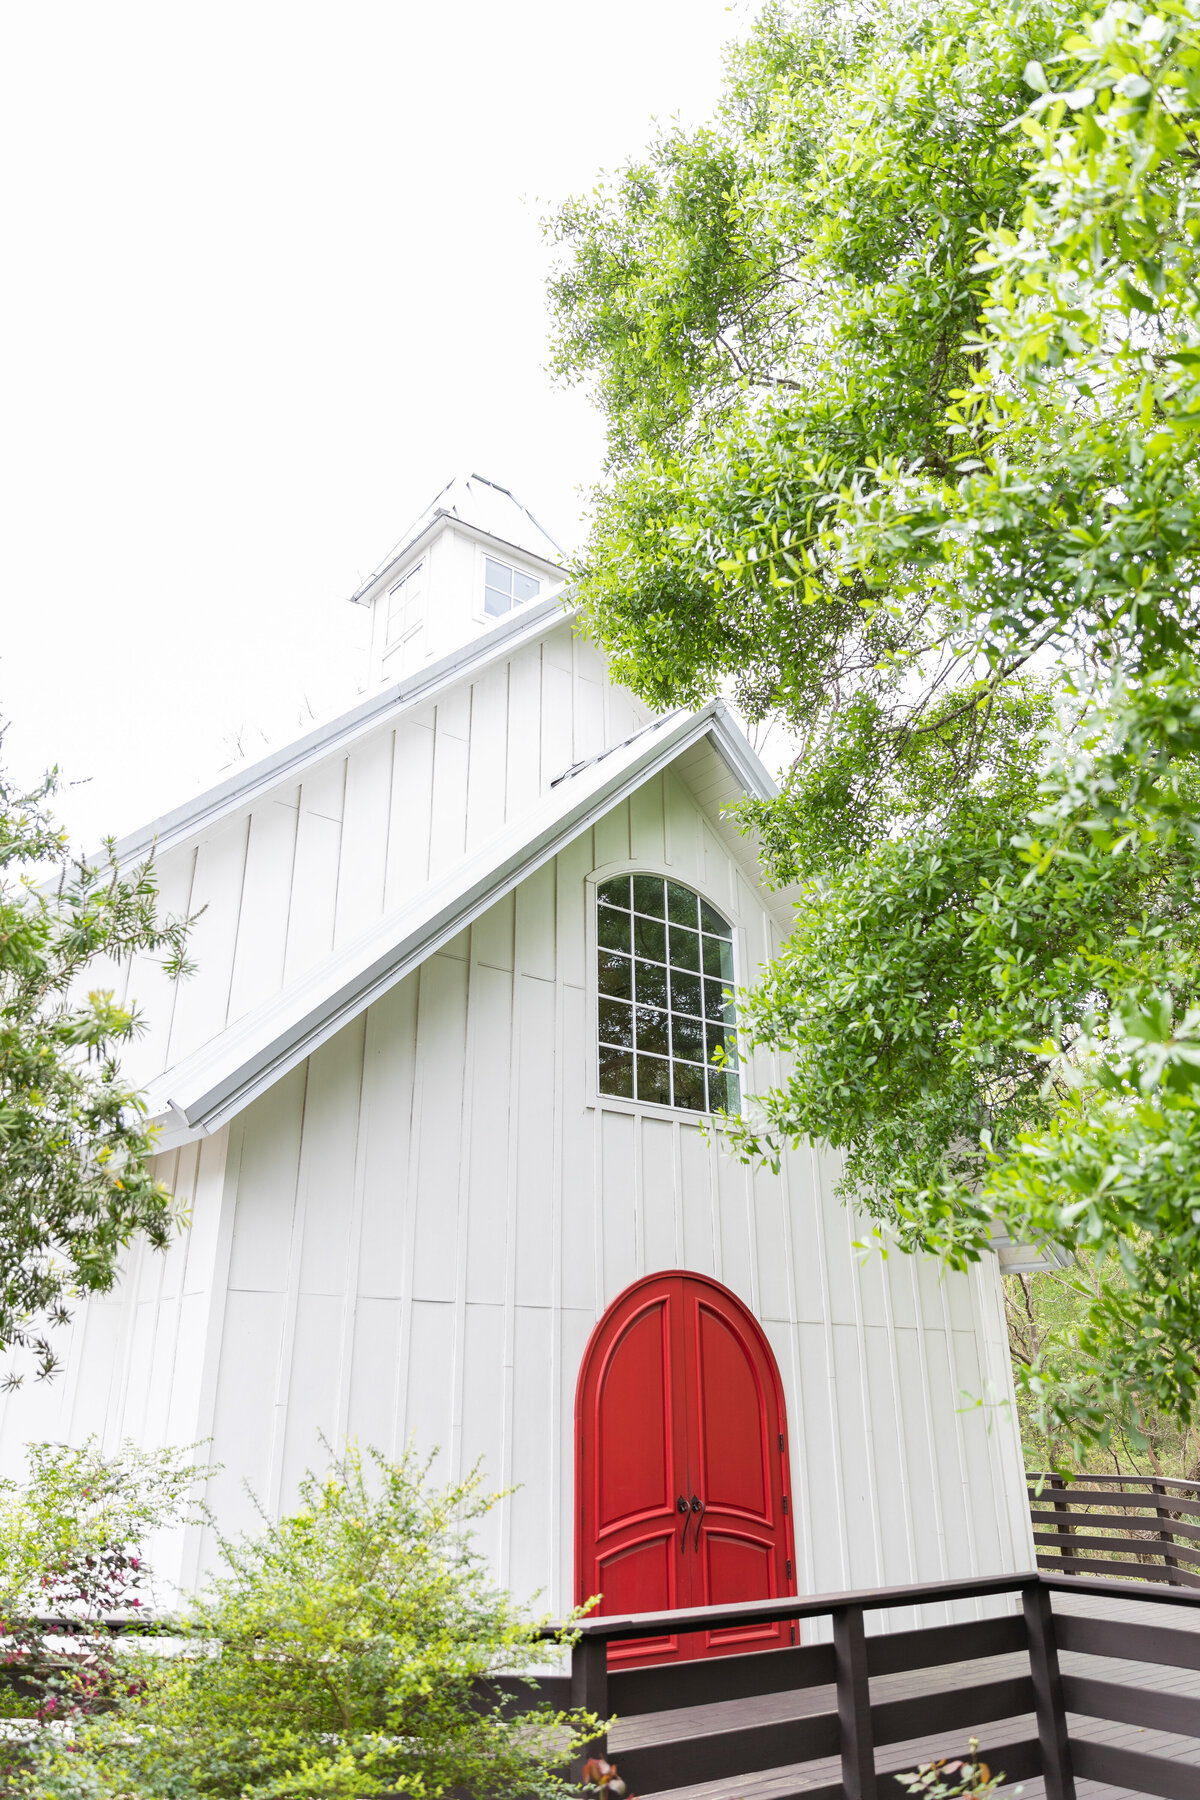 Lovely White Chapel at the Carriage House